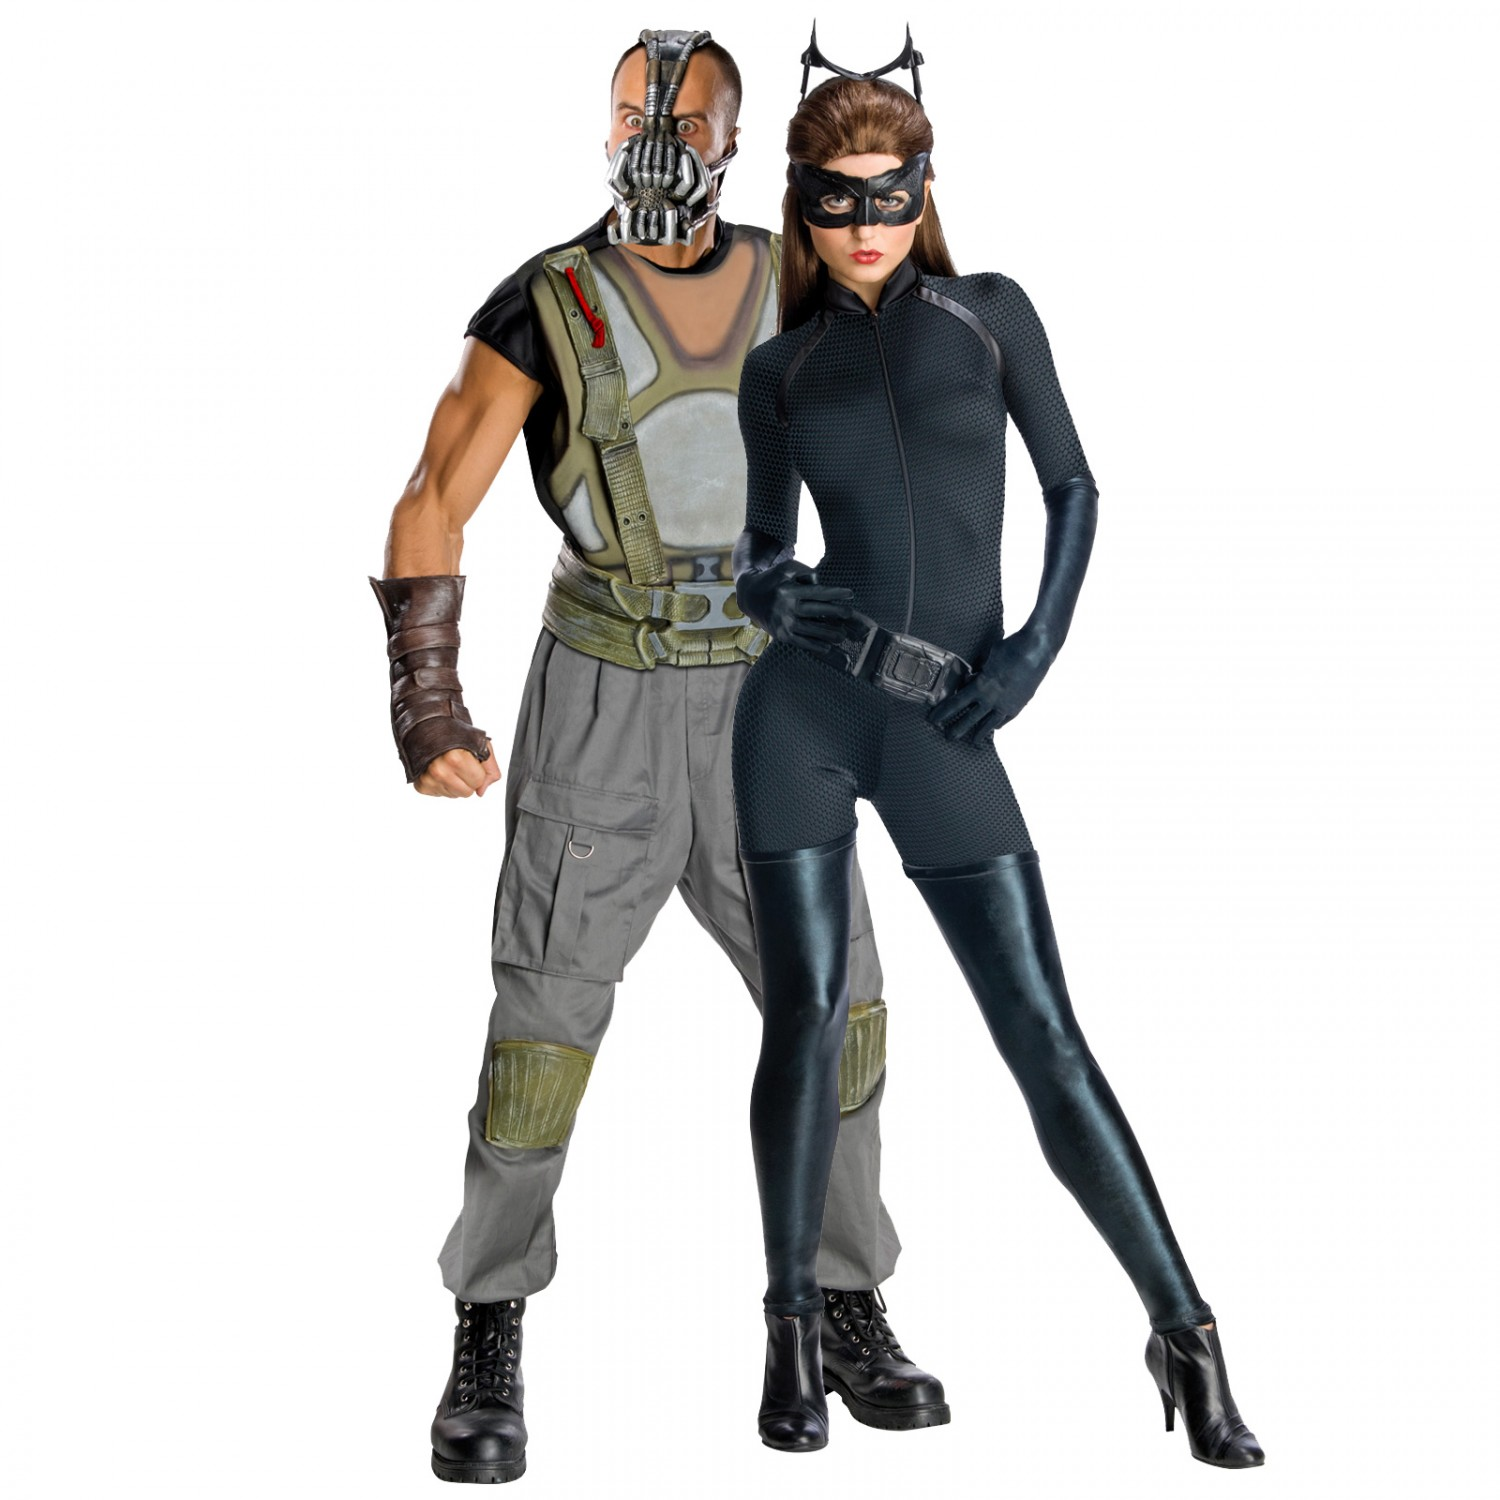 4 bane and catwoman - Halloween Costumes Bane